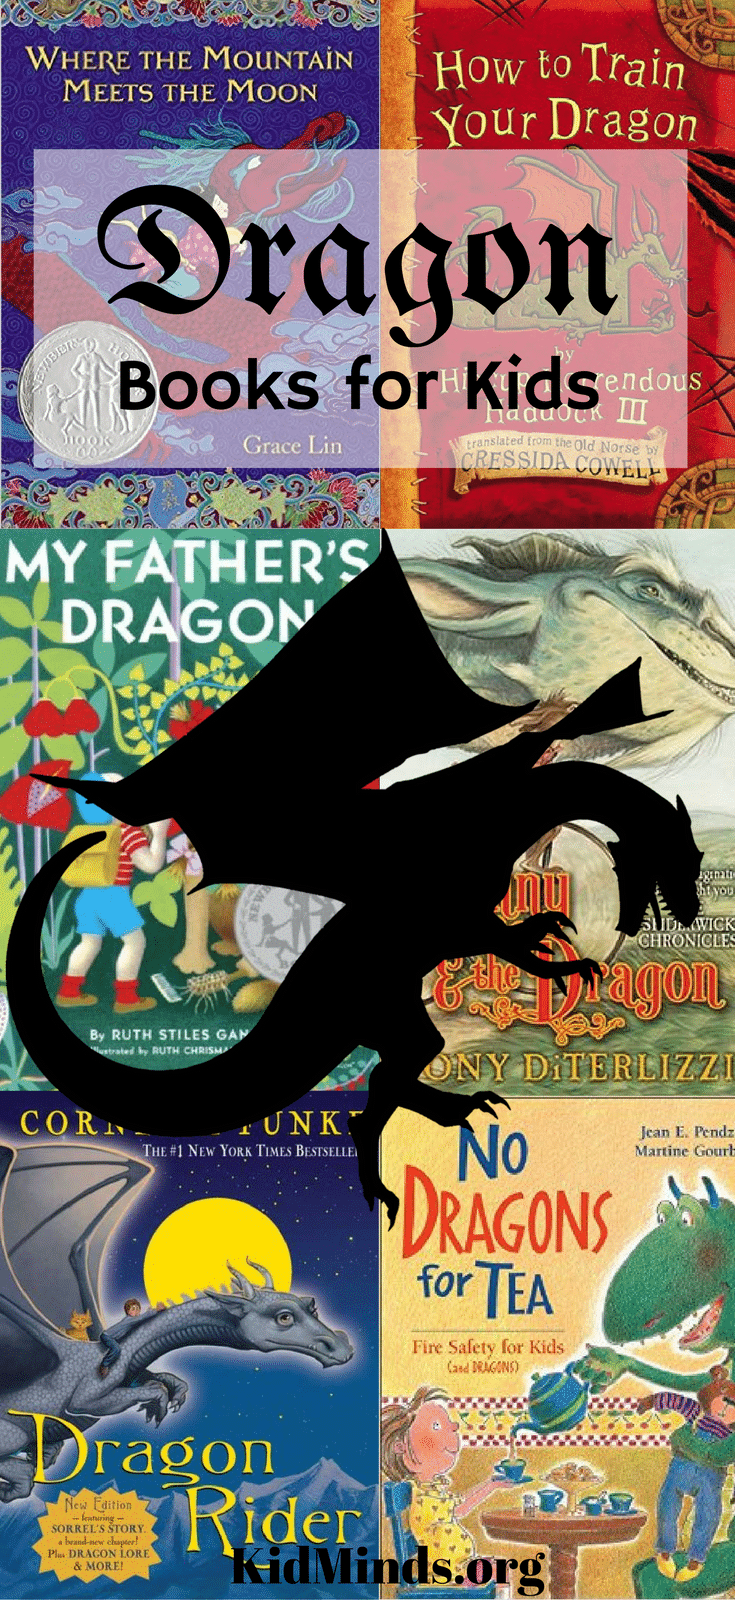 If you are looking for fabulous dragon books, check out our list.  We only included dragon books that are truly memorable!